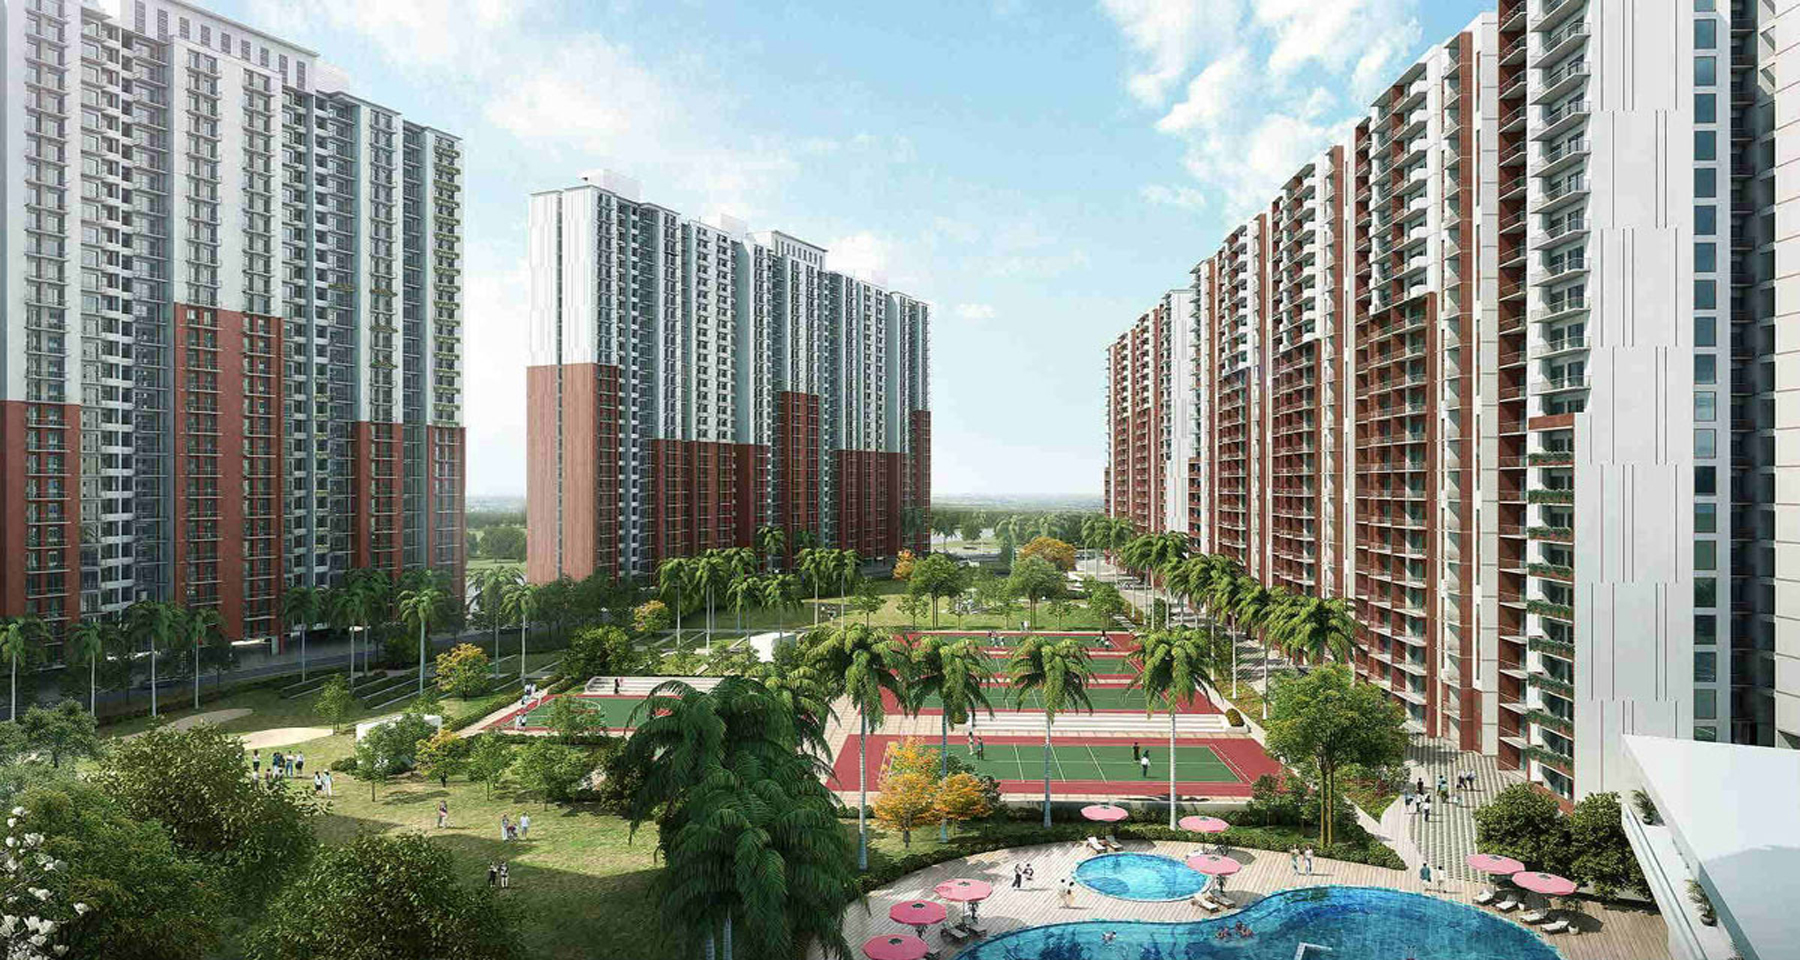 Tata Value Homes Eureka Park Sector-150, Noida